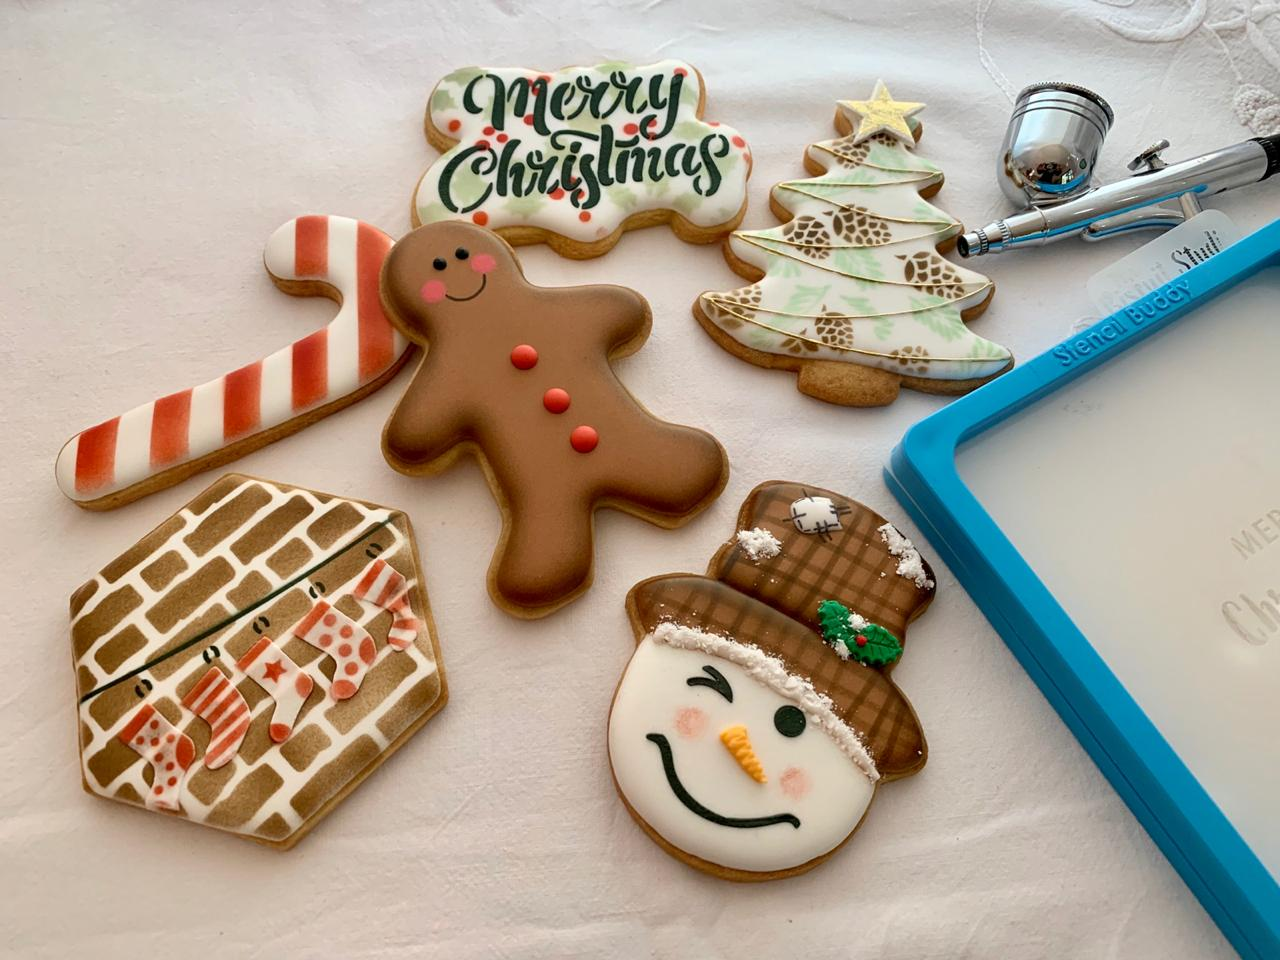 Christmas Airbrush & Stencil Class | The Biscuit Studio